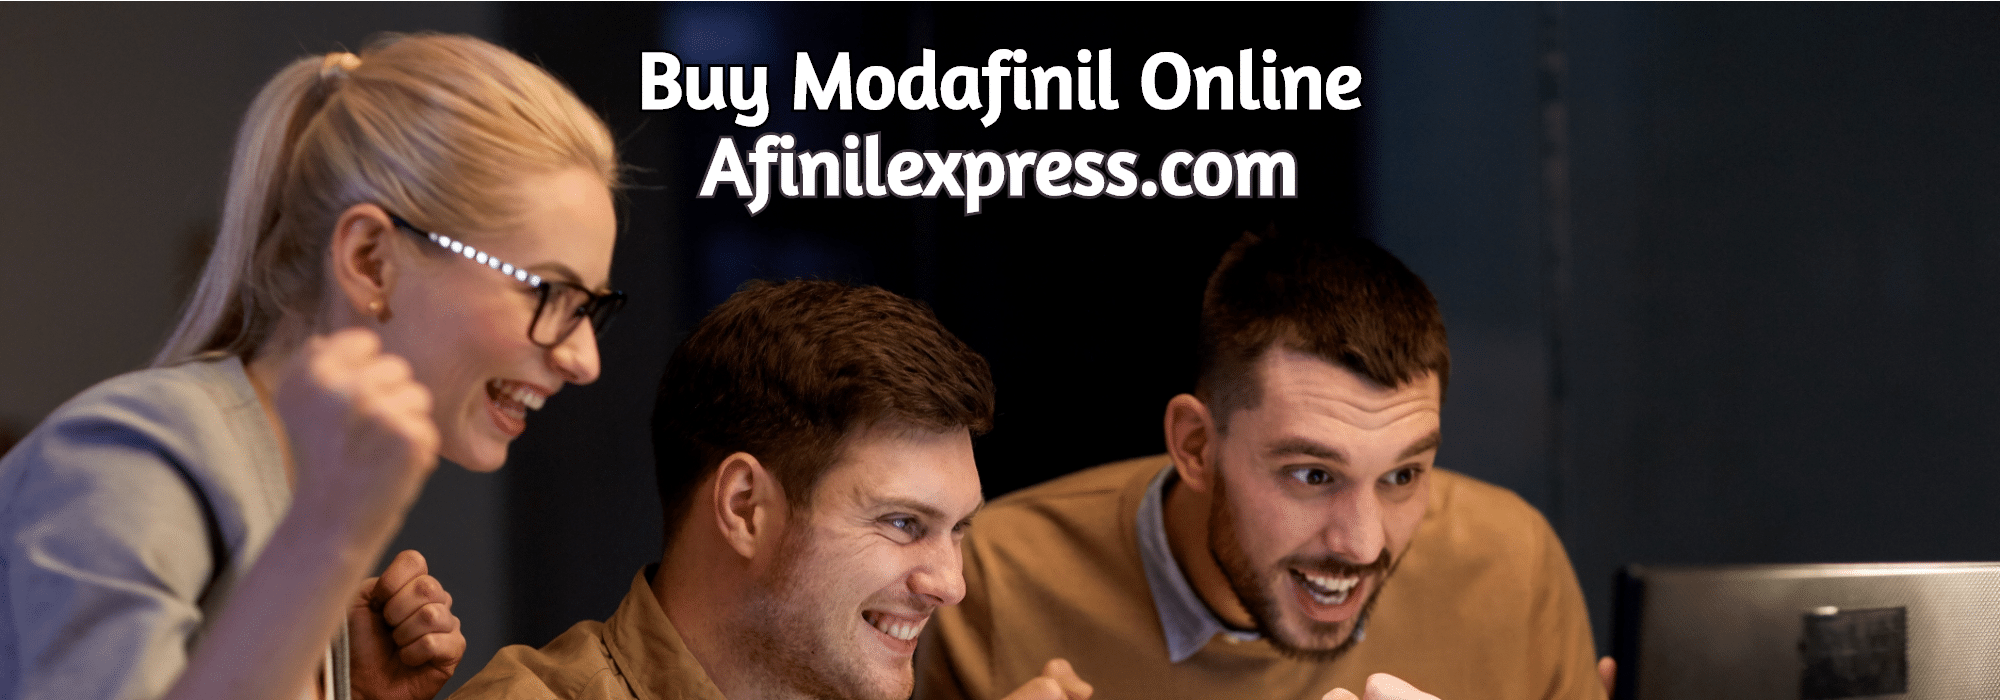 Modafinils Place In The Modern World, afinilexpress.org